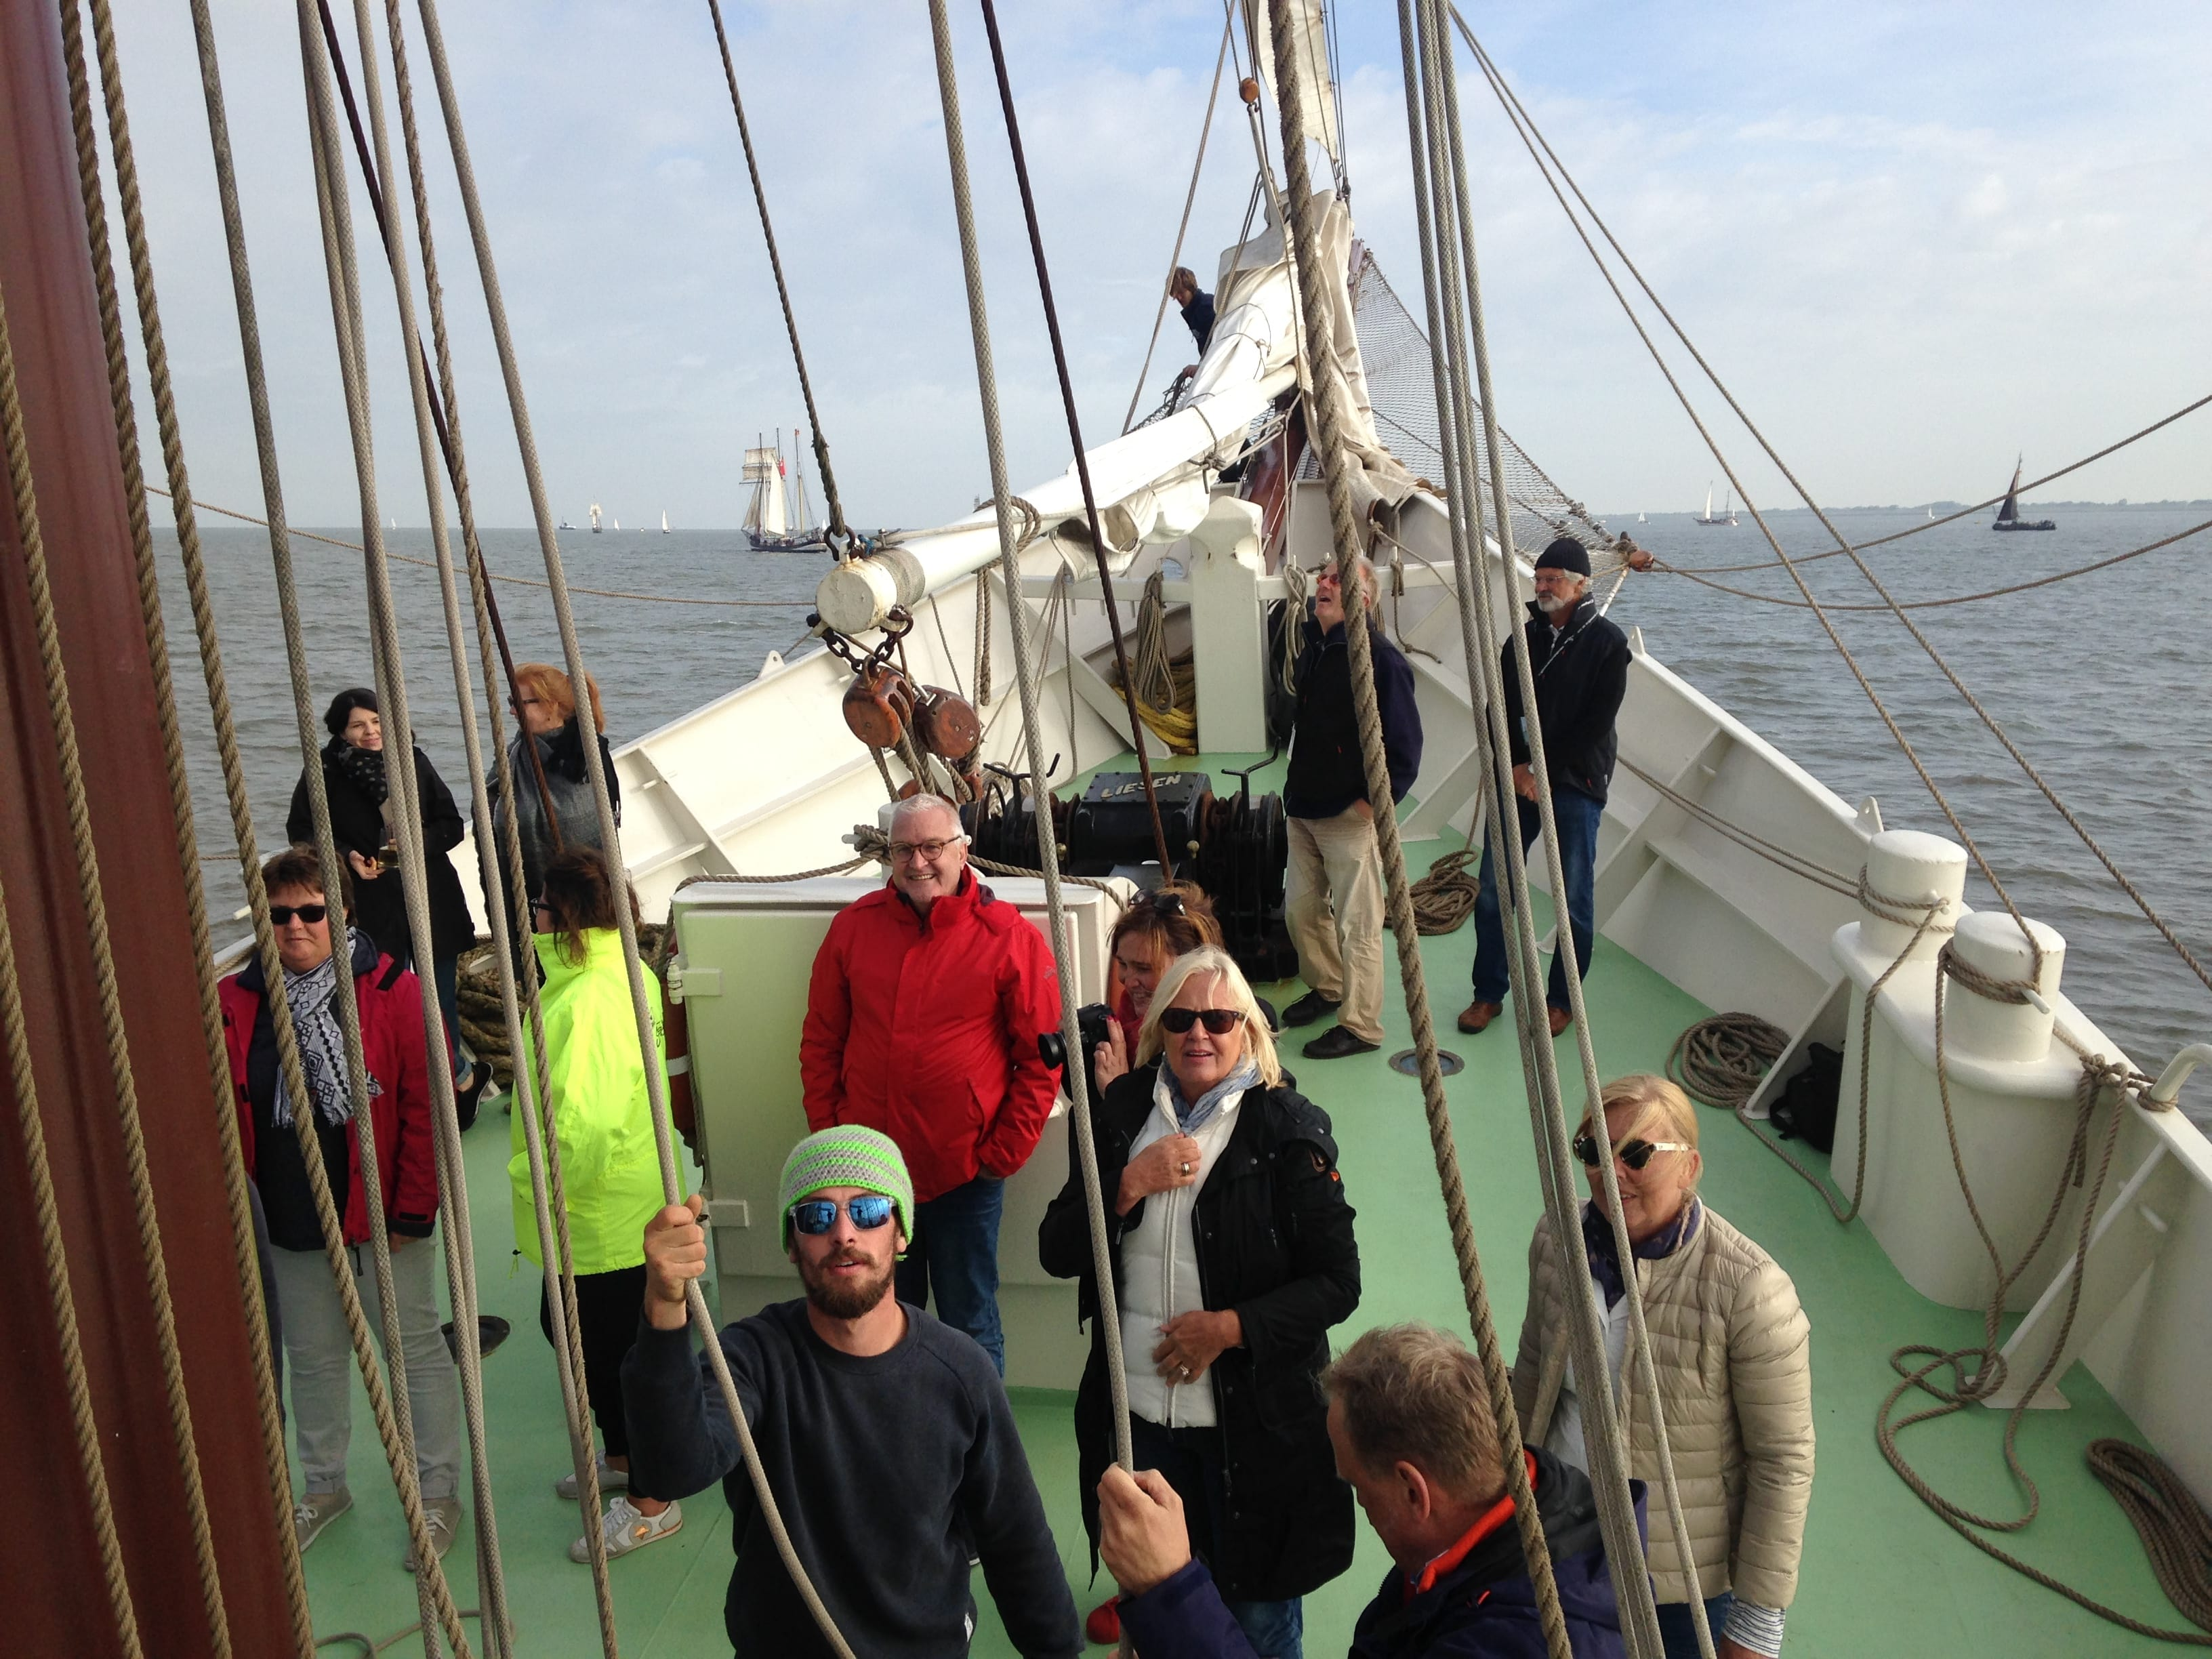 Setting sails with instructions from the crew of the Bark Artemis